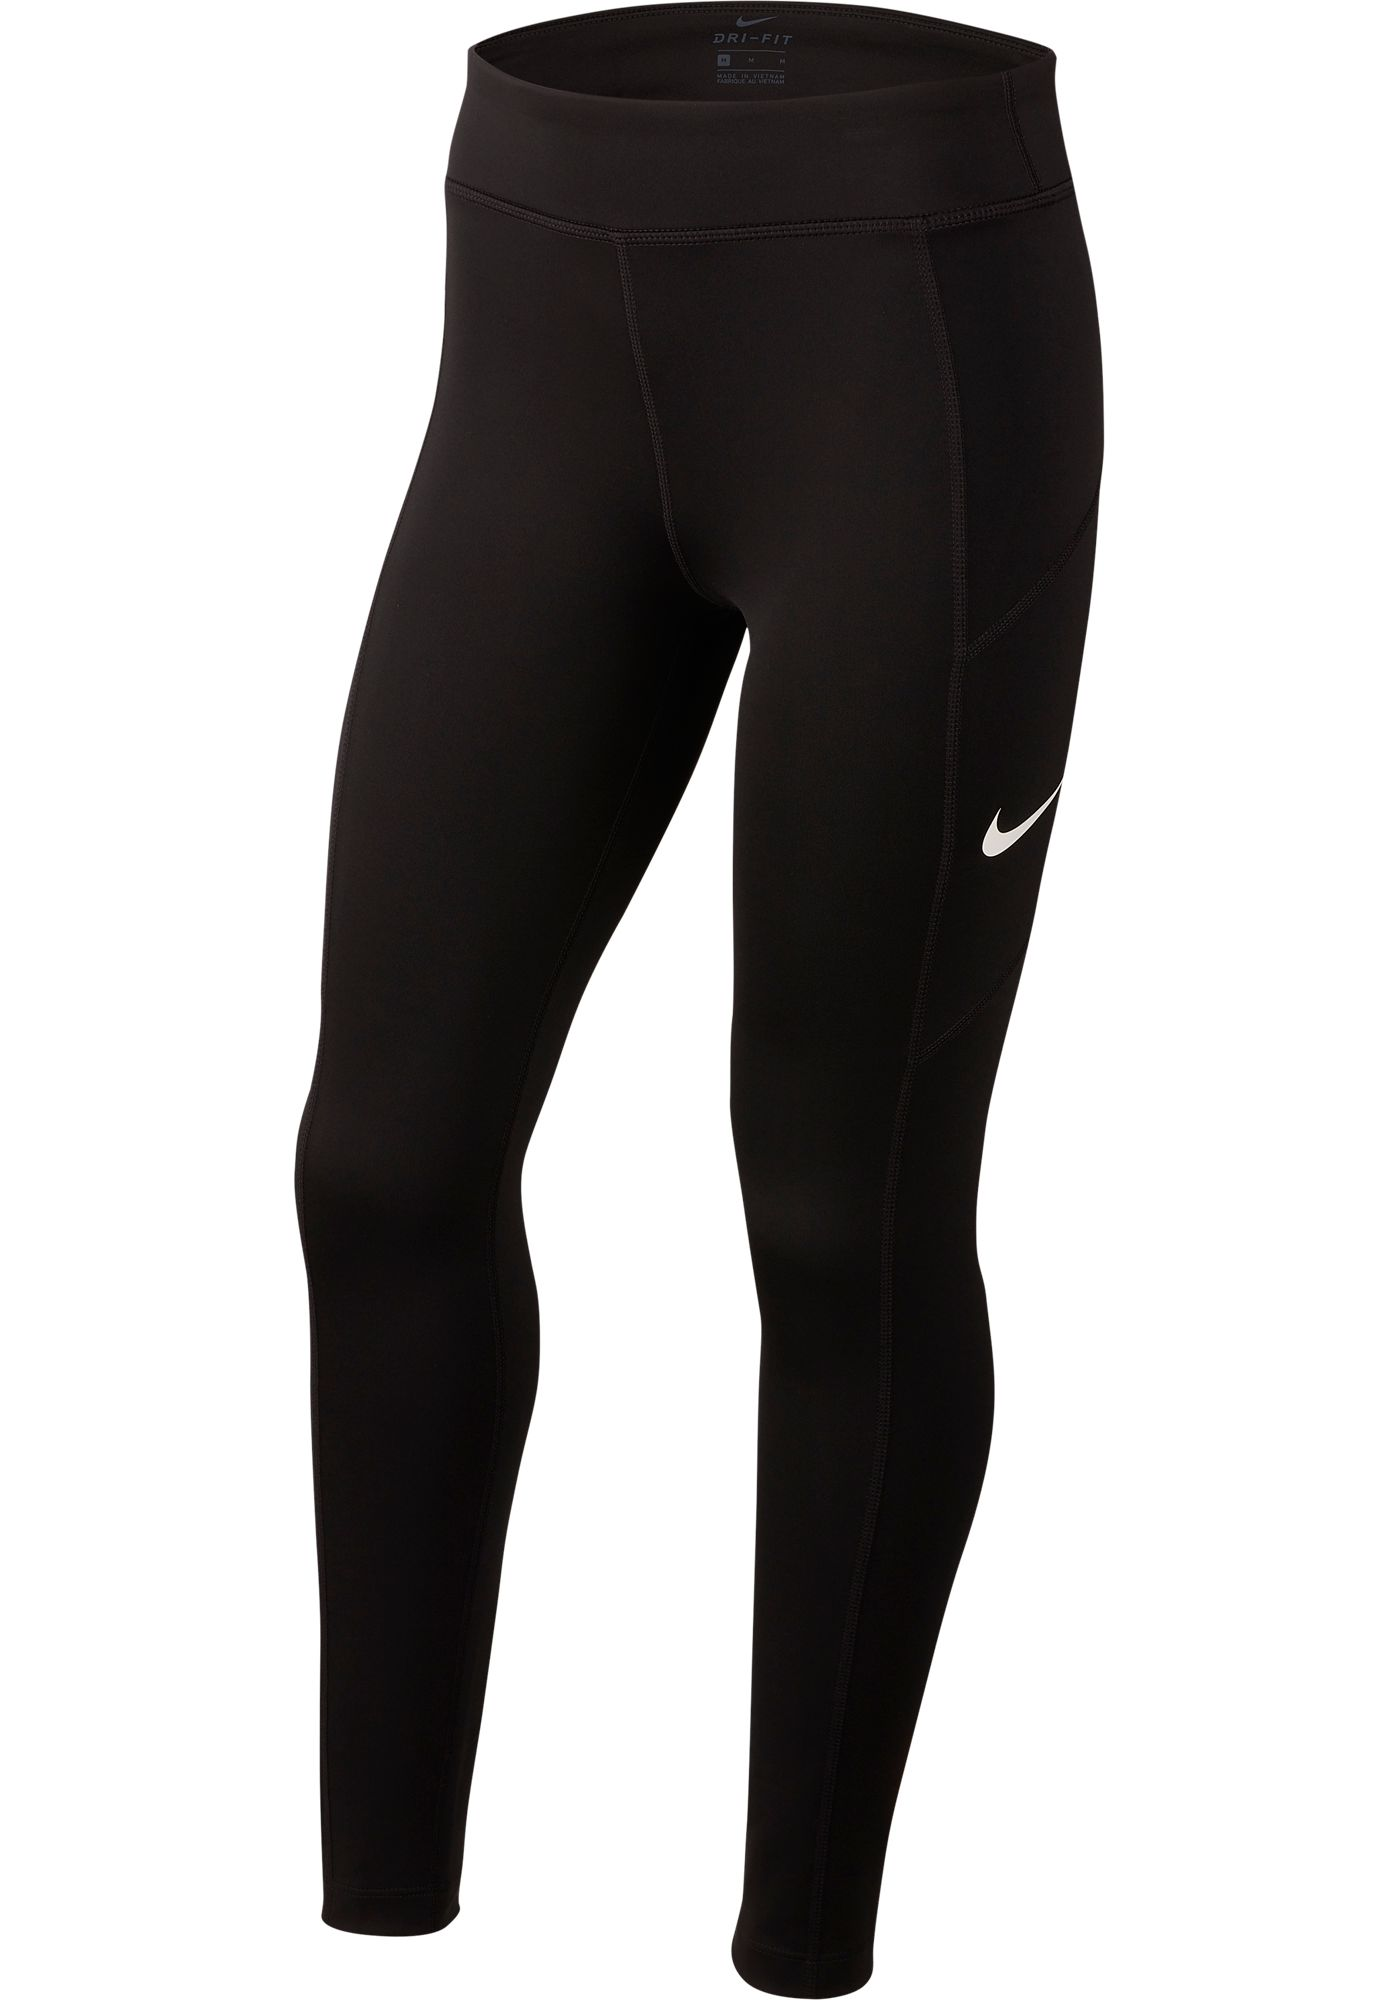 Nike Girls' Trophy Training Tights